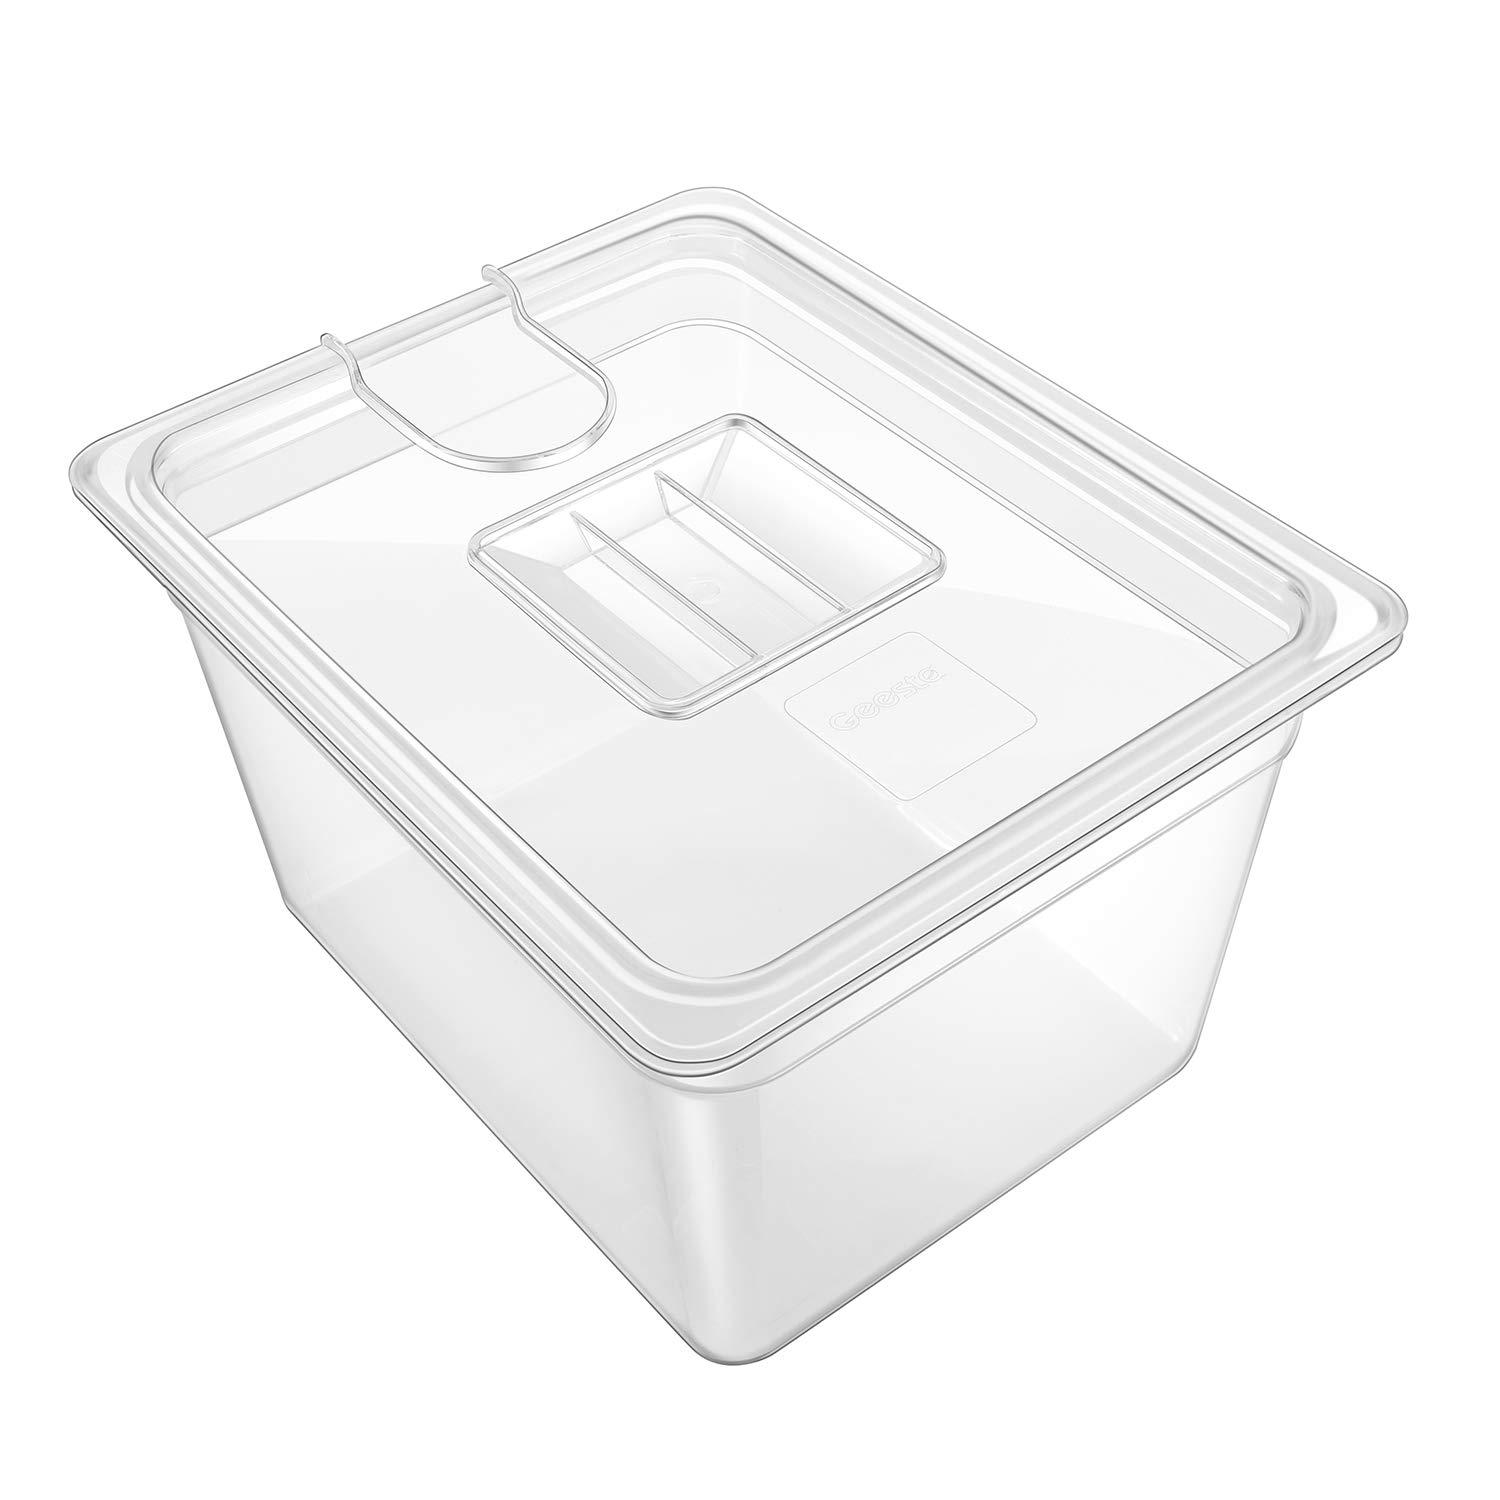 GEESTA Crystal-Clear Sous Vide Container with Lid-12qt, Fits Most Sous Vide Cookers by Geesta